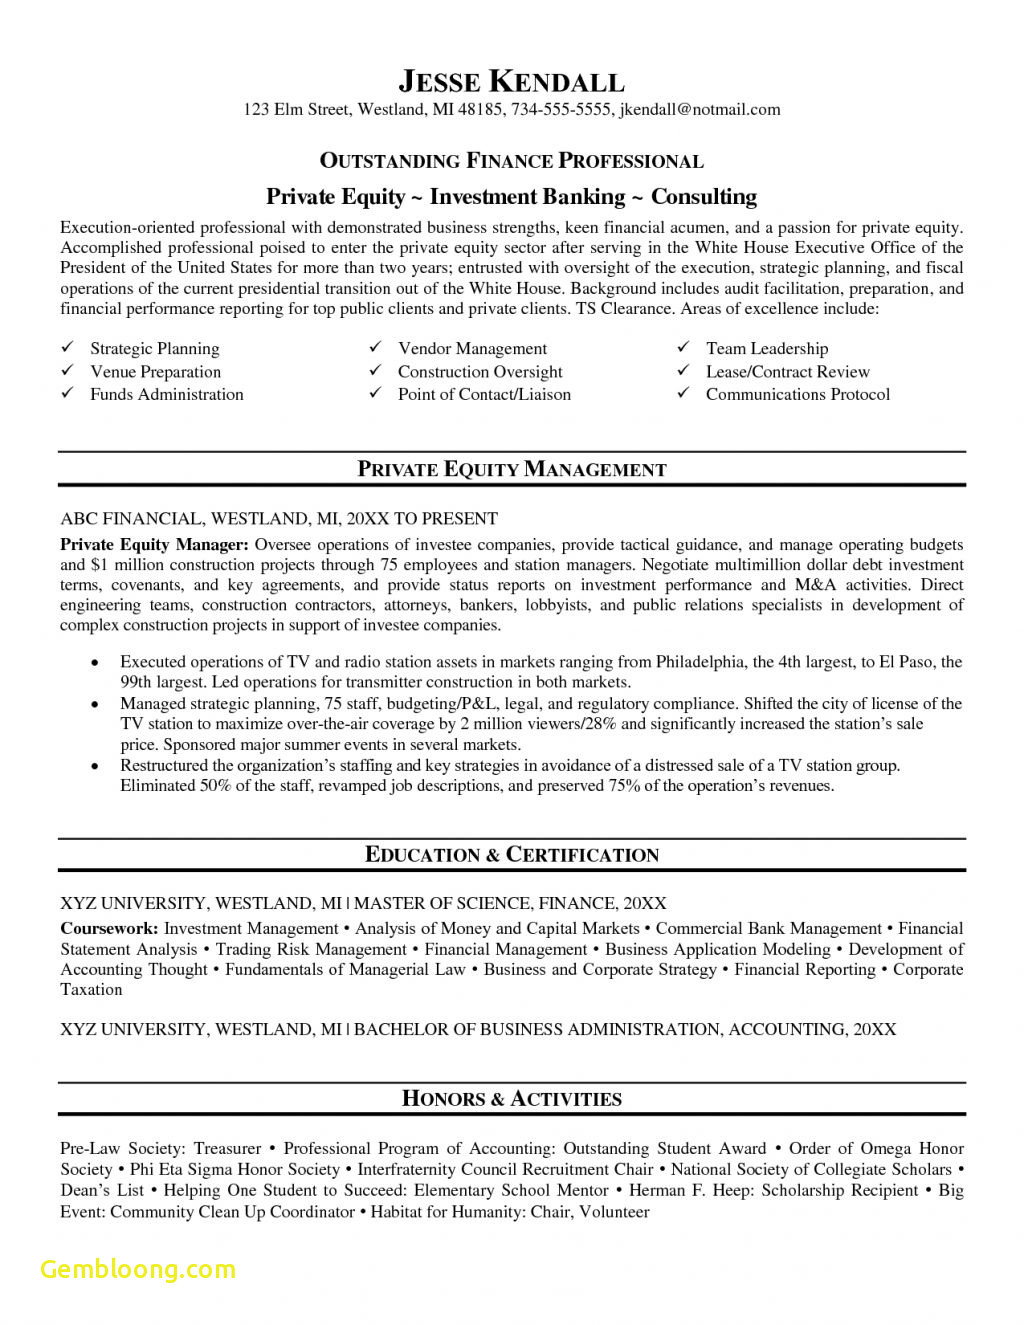 Private Equity Resume Template - Download Fresh Private School Administration Sample Resume